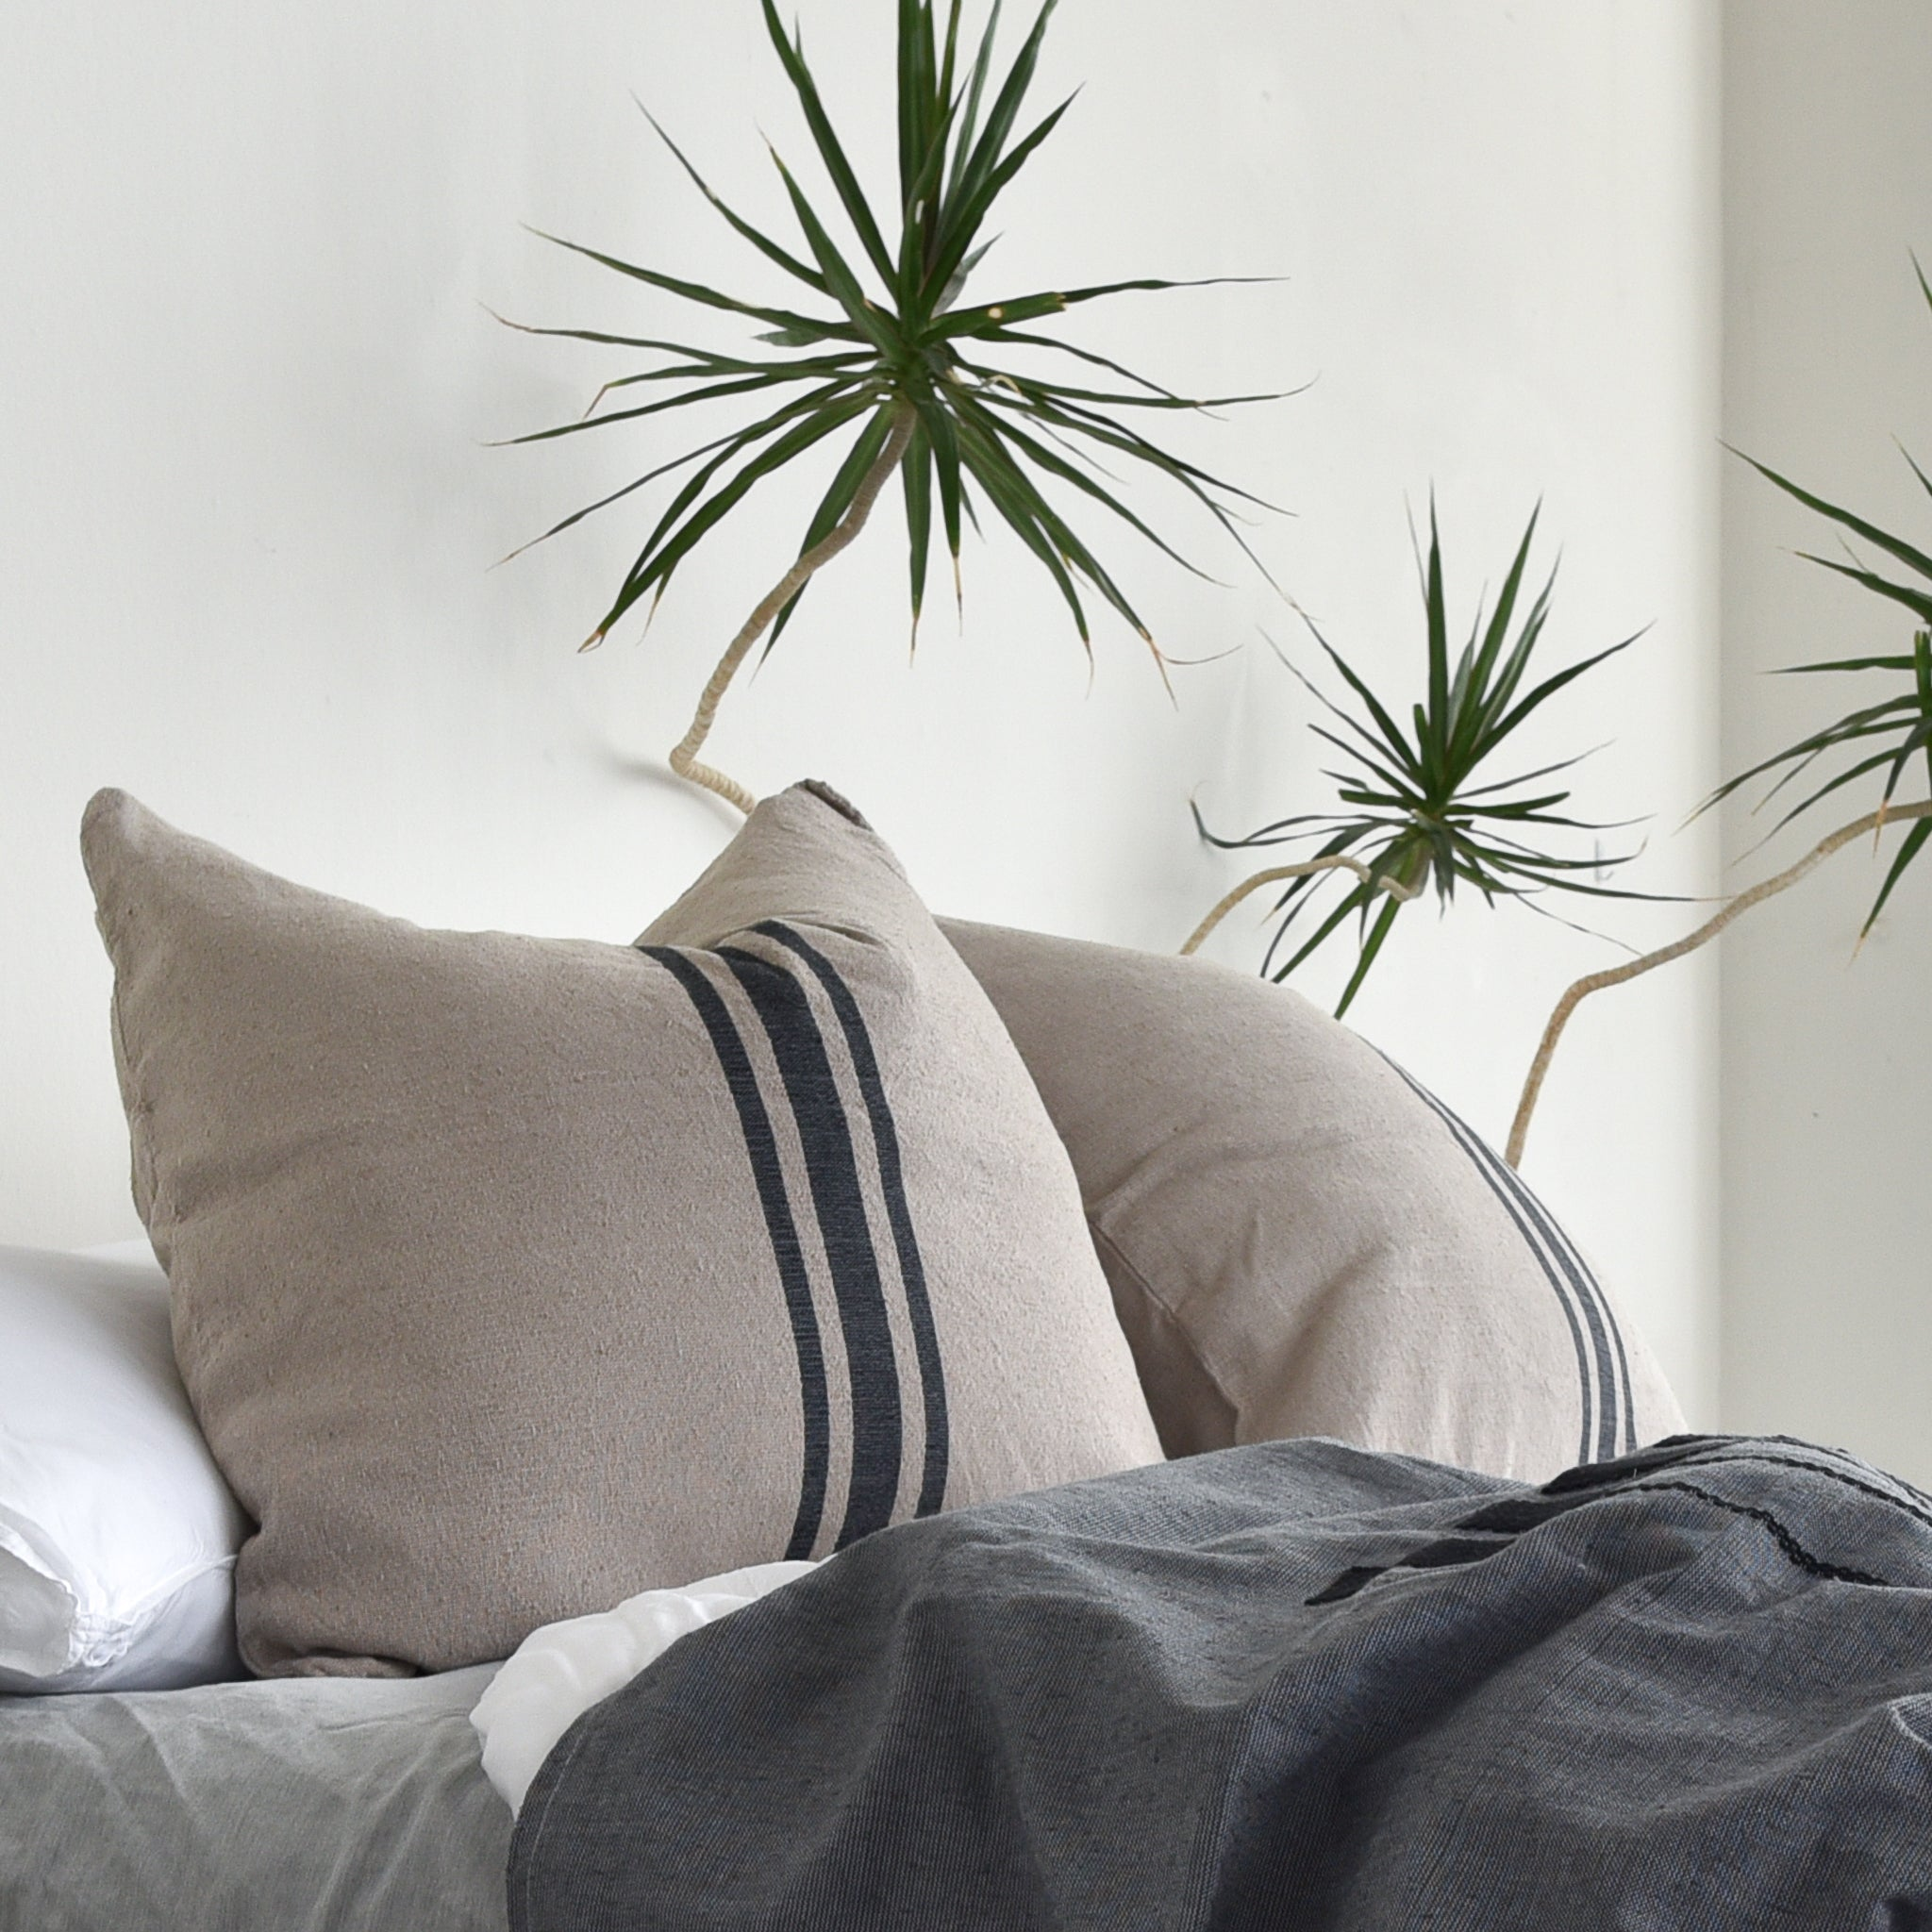 A pair of cotton euro shams with a center stripe design on a messy, unmade bed alongside a tall yucca plant.